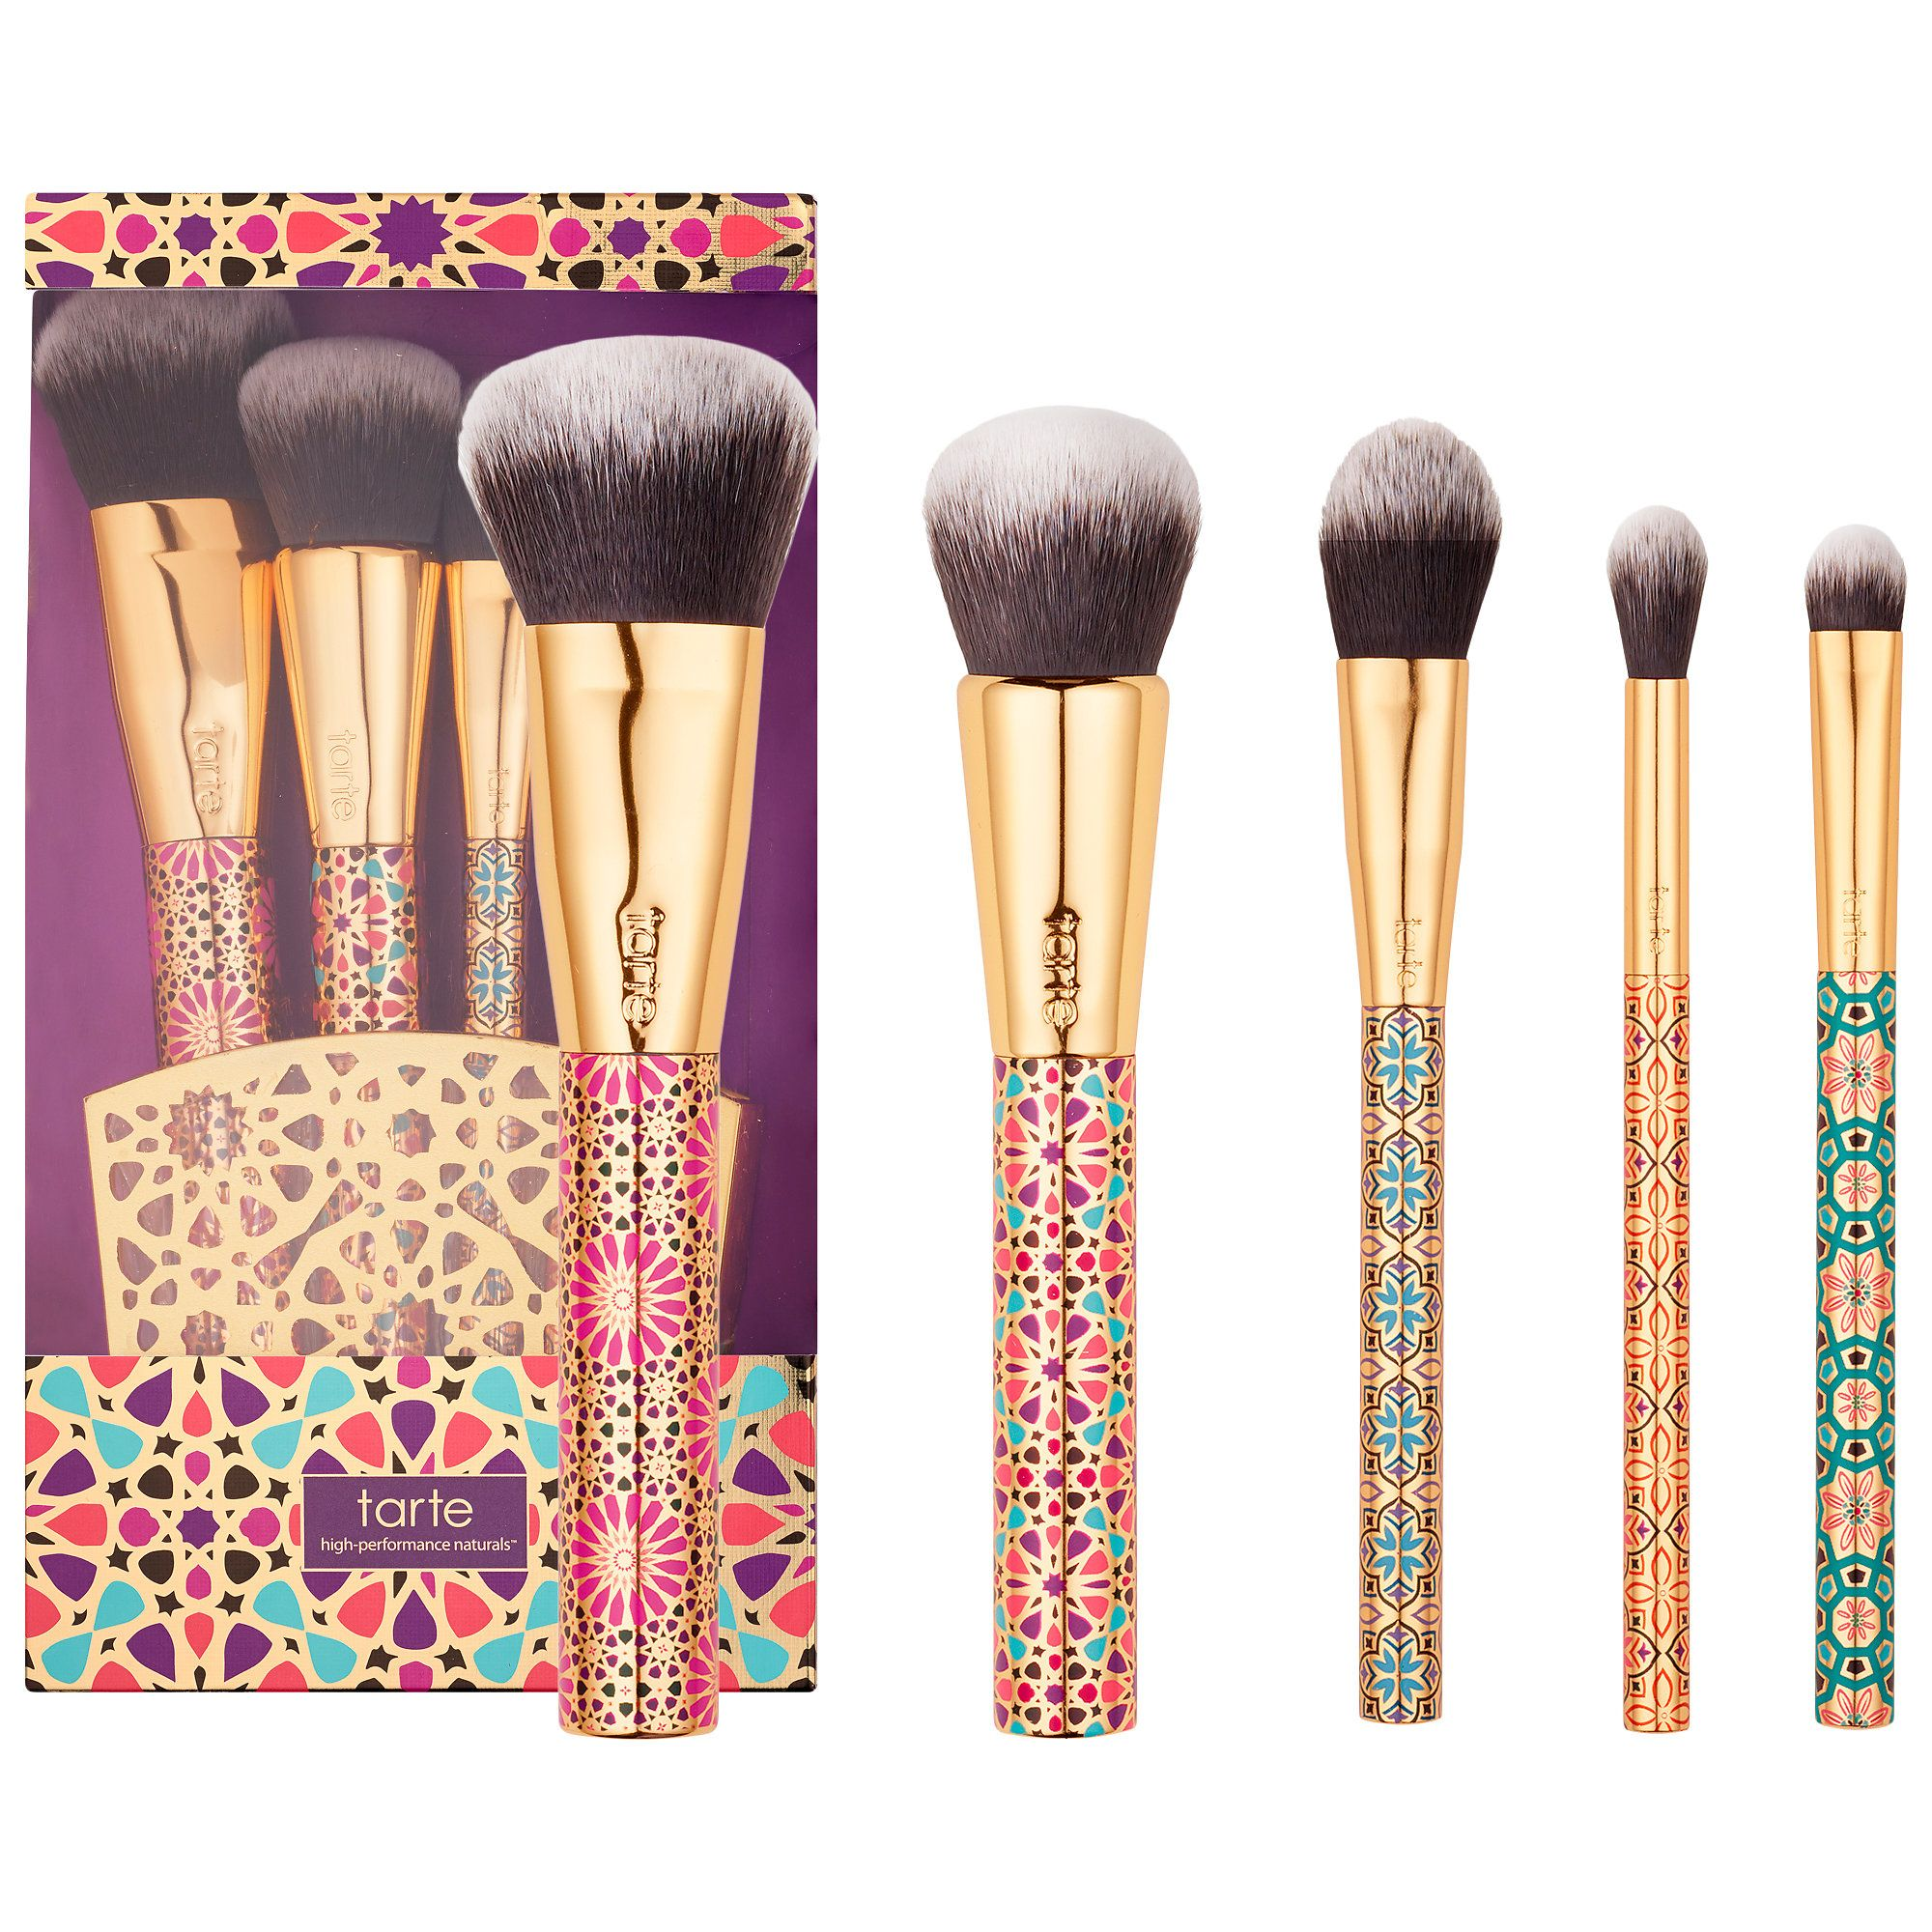 Tarte Christmas 2019 Tarte Limited Edition Artful Accessories Brush Set, new for